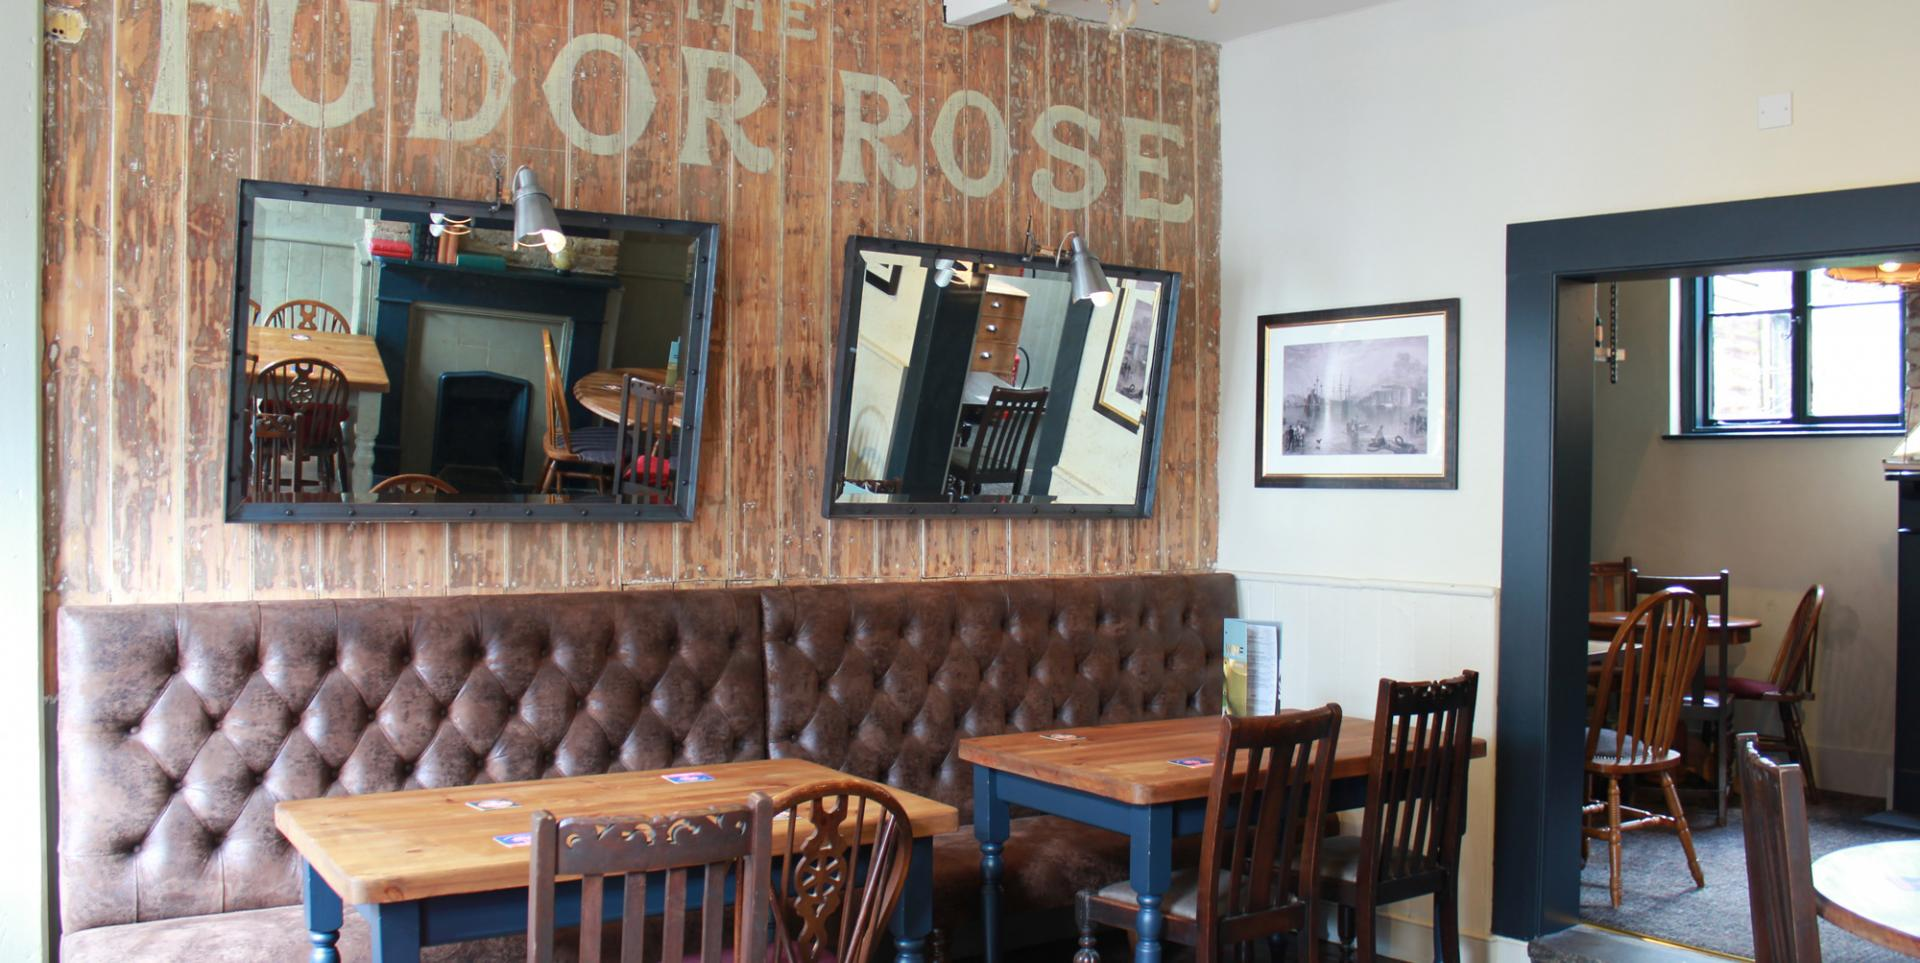 Tudor Rose, Upper Upnor, Rochester